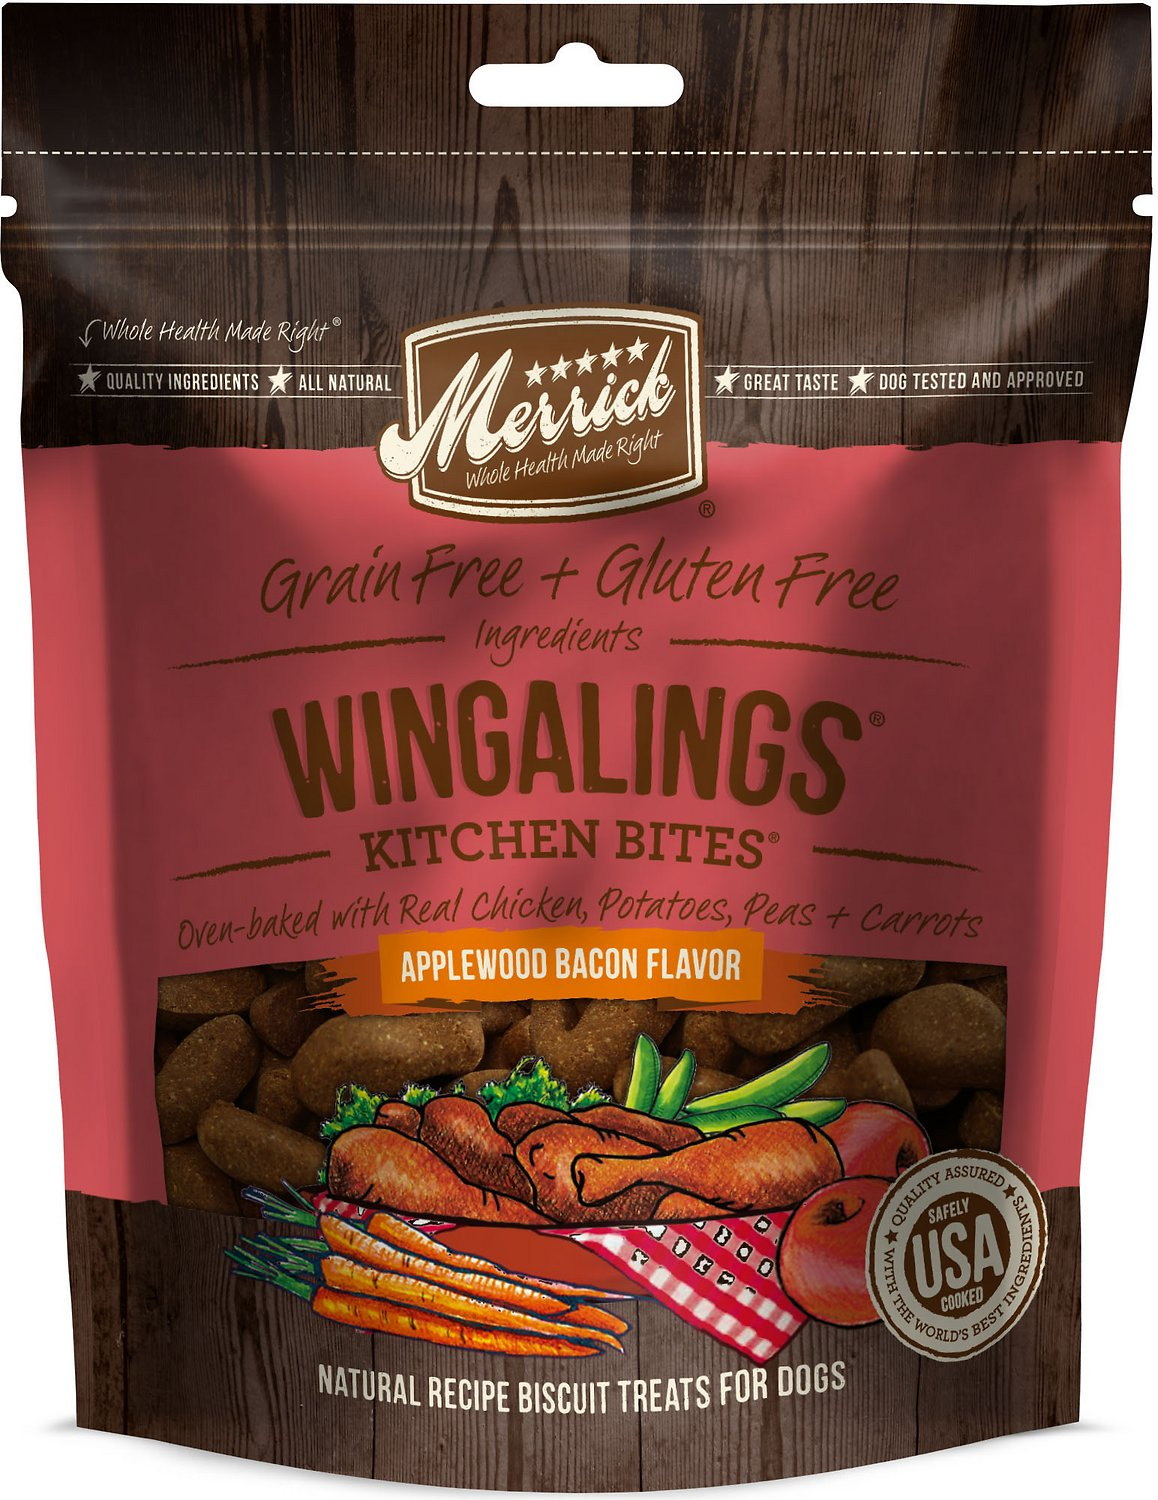 Merrick Kitchen Bites Wingalings Applewood Bacon Flavor Grain-Free Biscuits Dog Treats, 9-oz bag